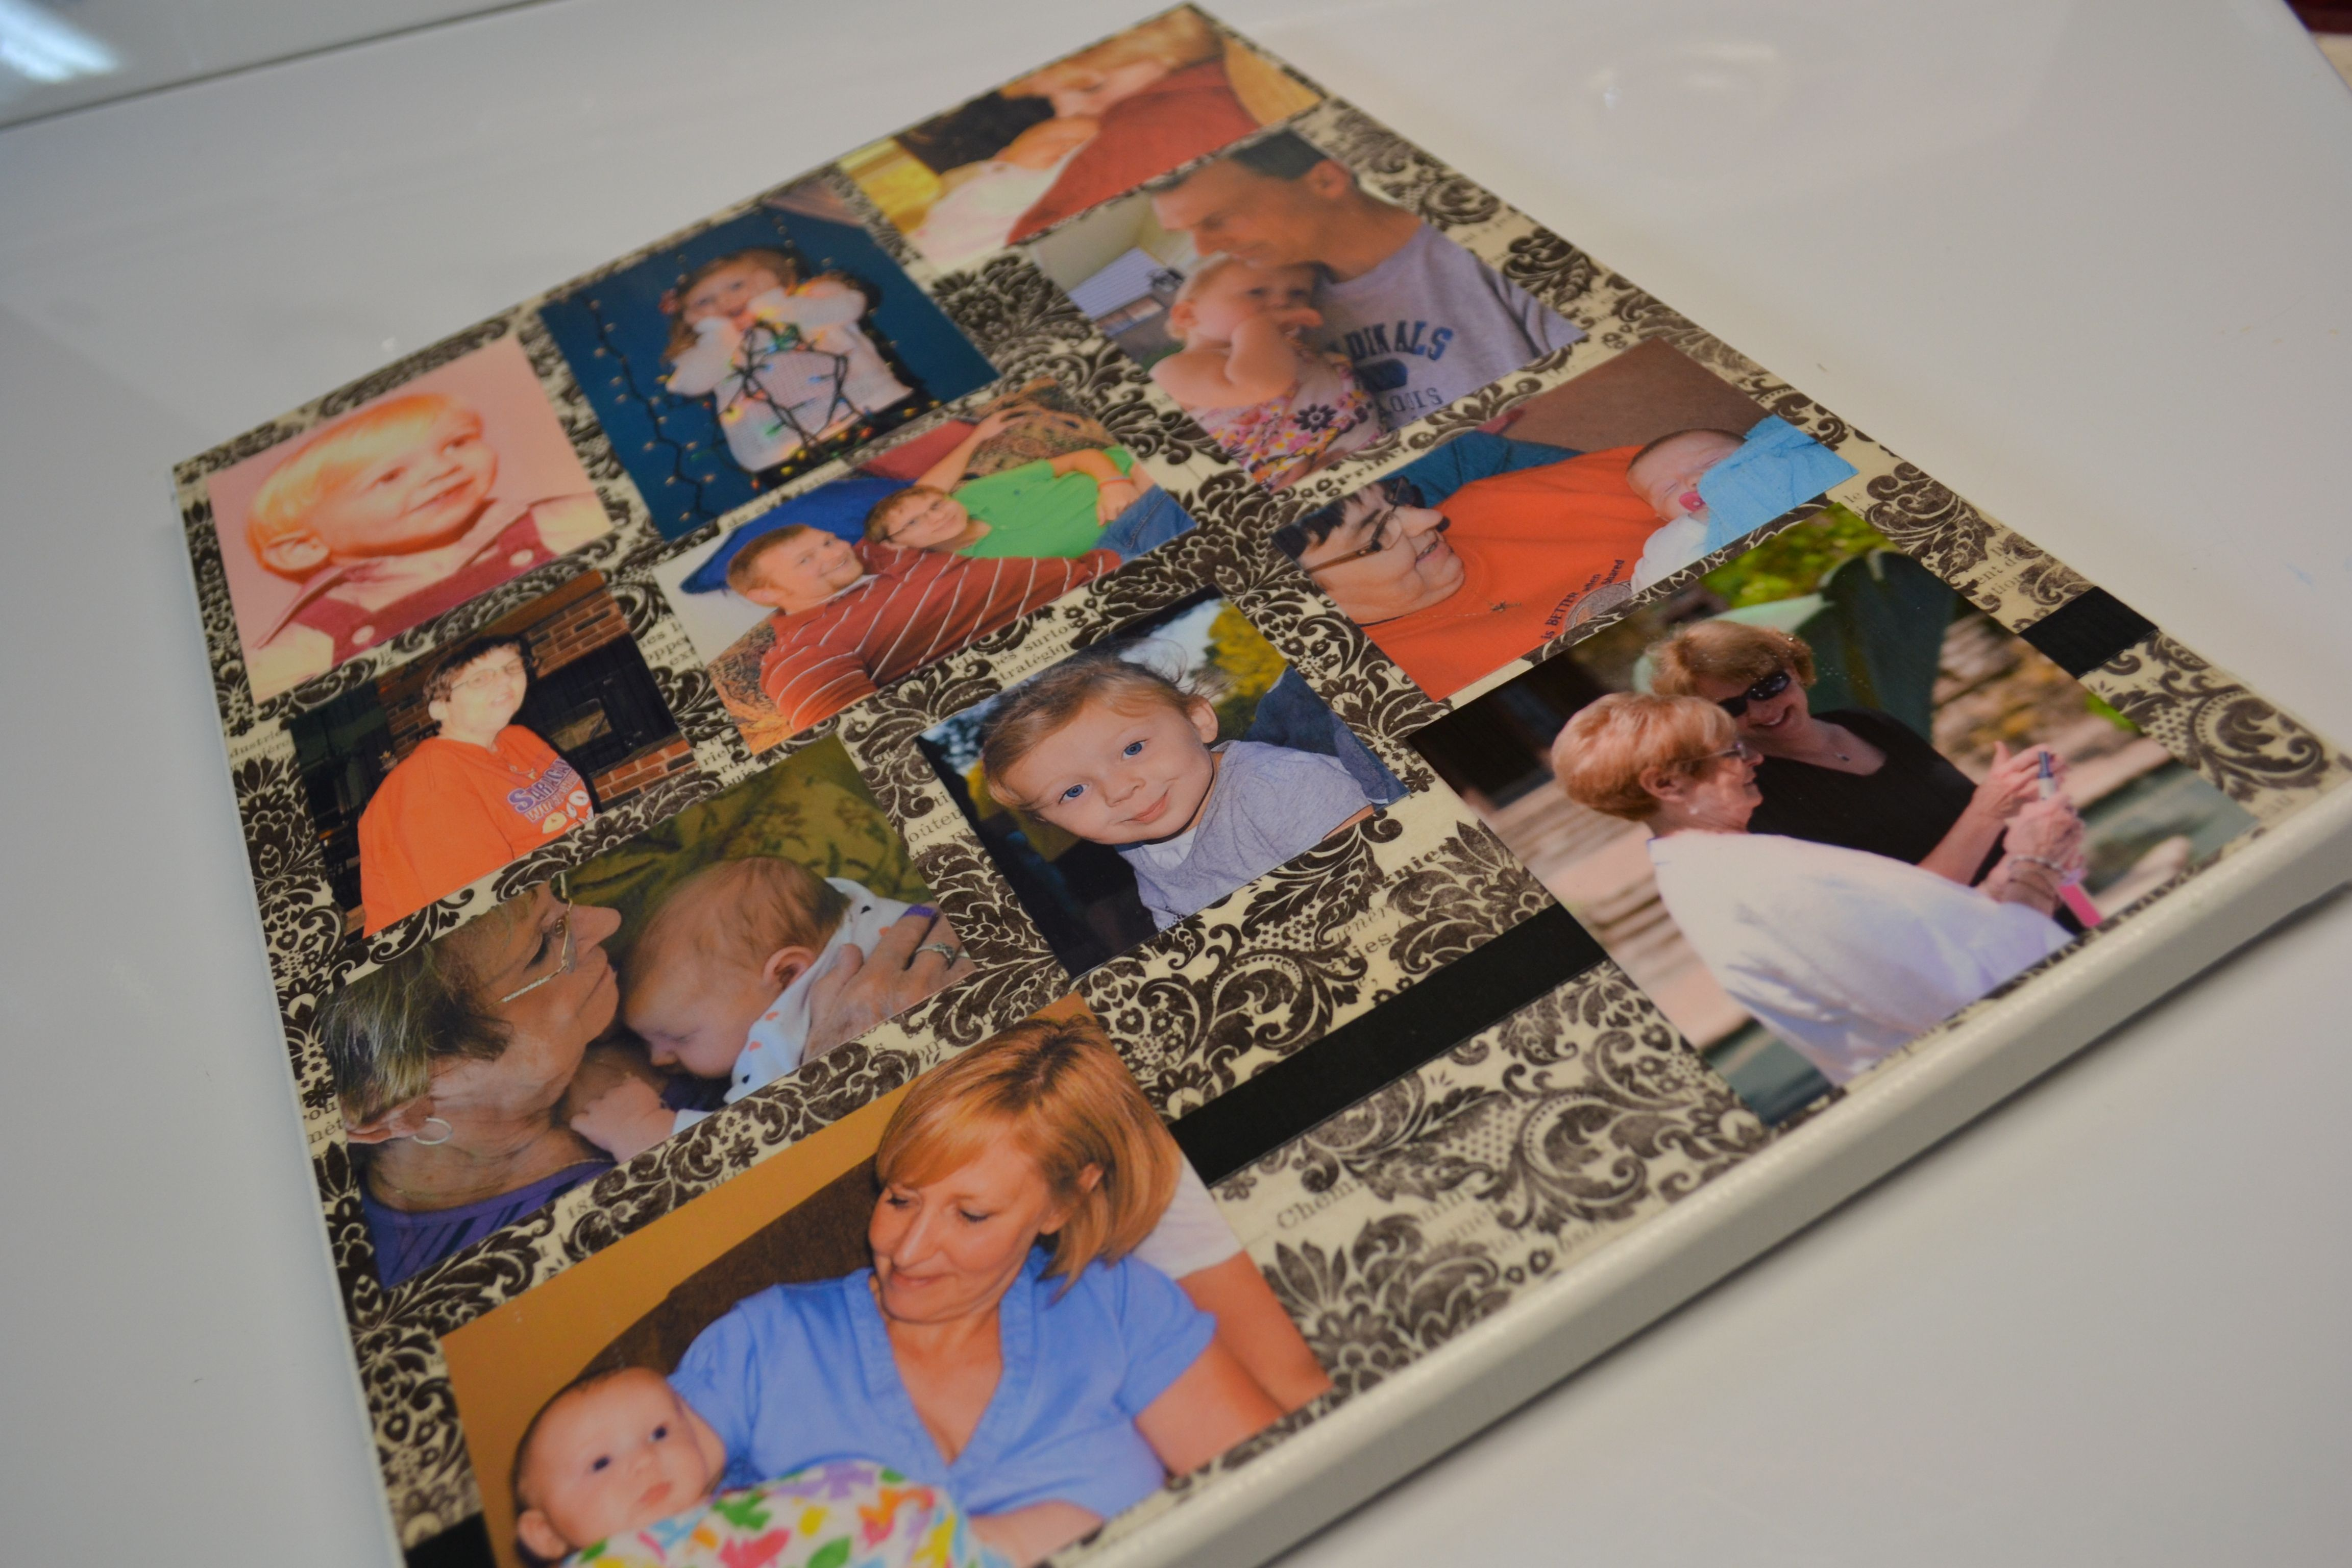 mod podge projects Dear reader, whether you are a beginning decoupager or have used mod podge for years, it's always great to have some new ideas and inspiration.